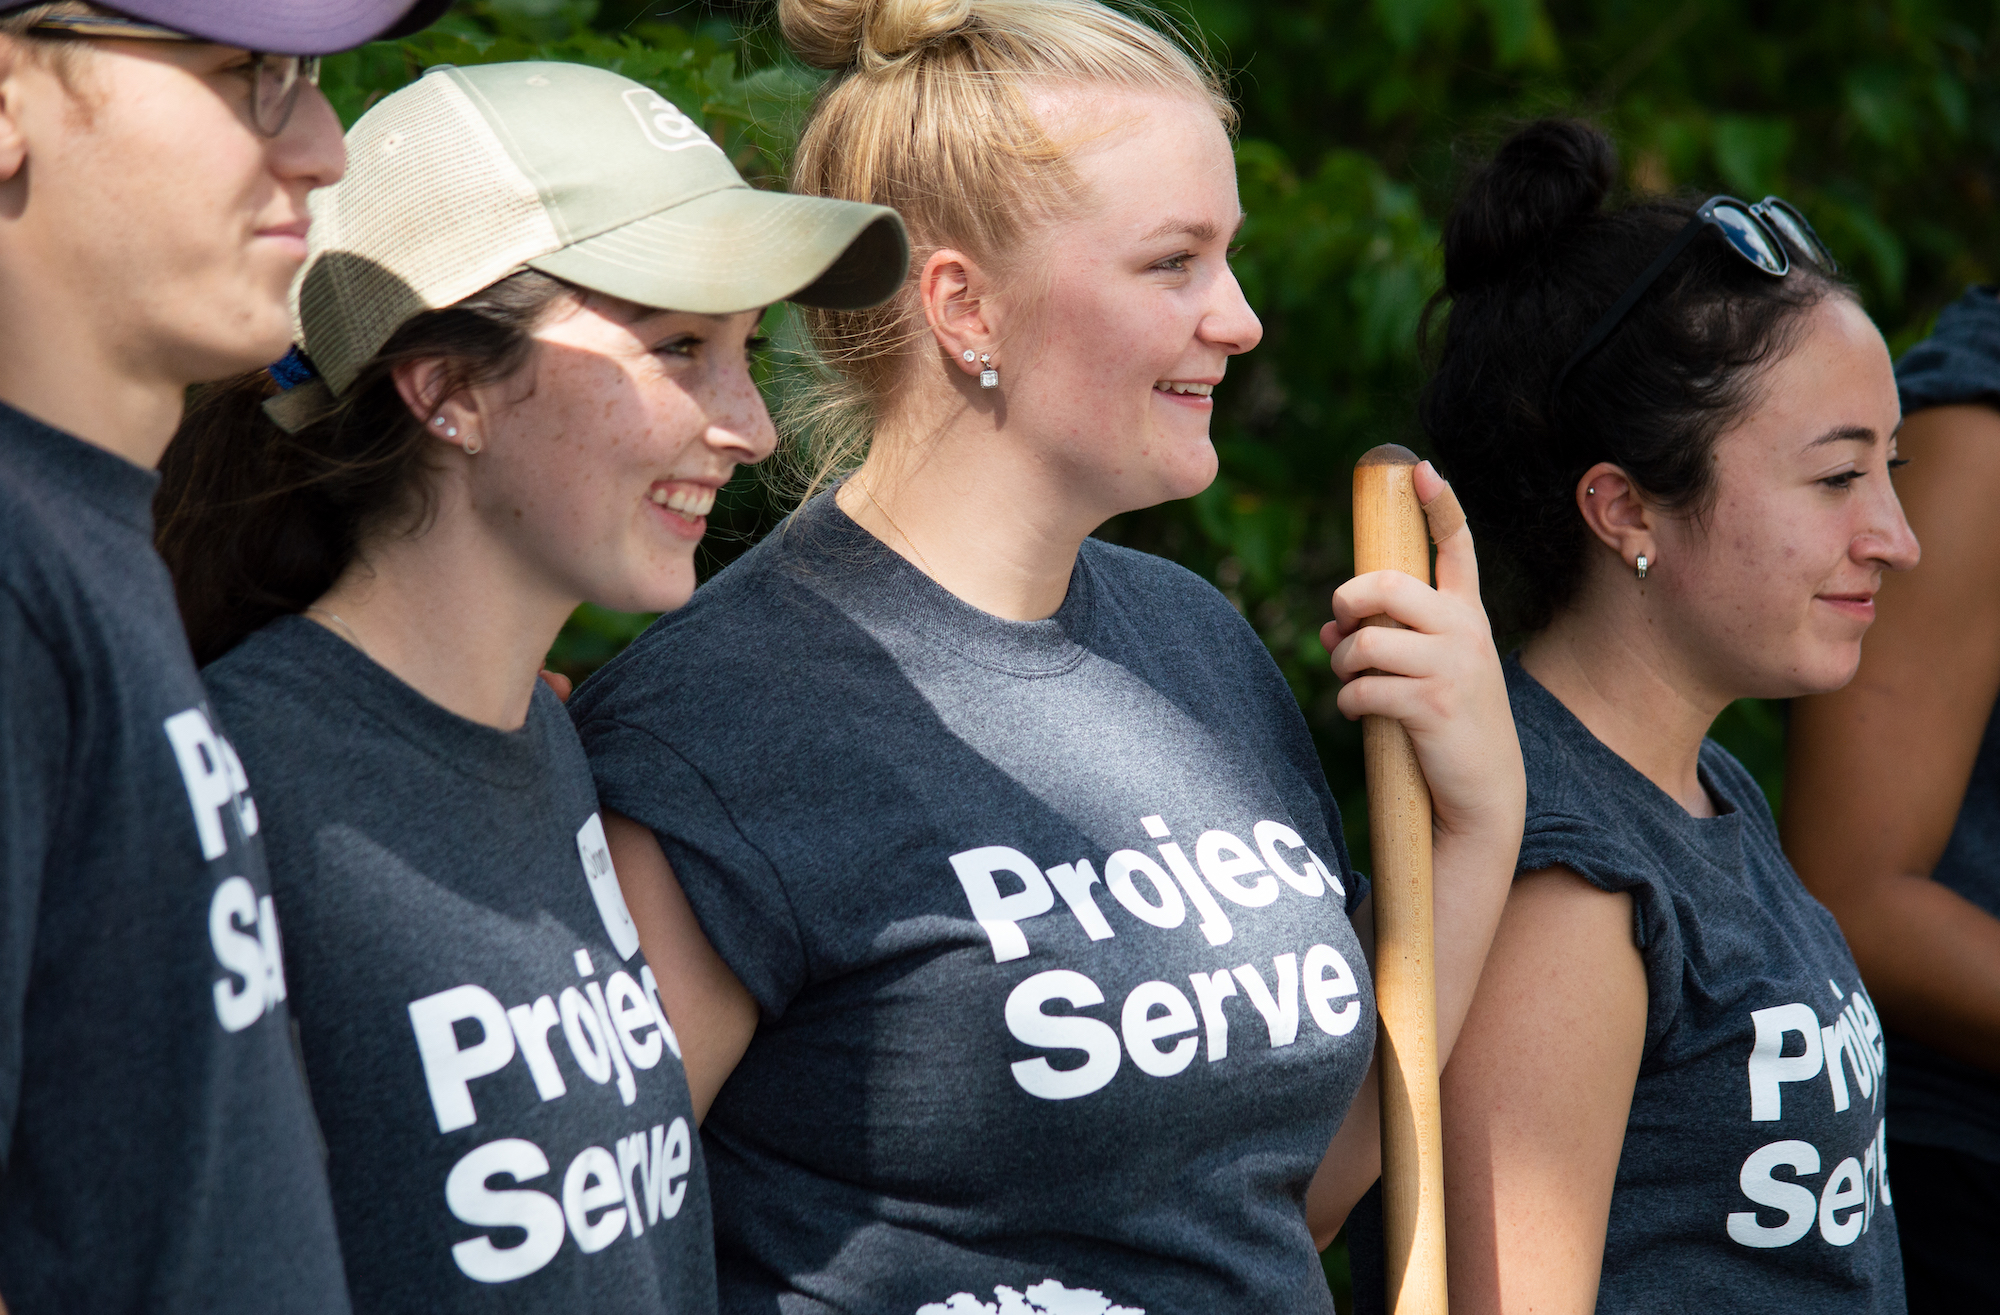 Four volunteers in Project Serve Day t-shirts are shown in this photo.